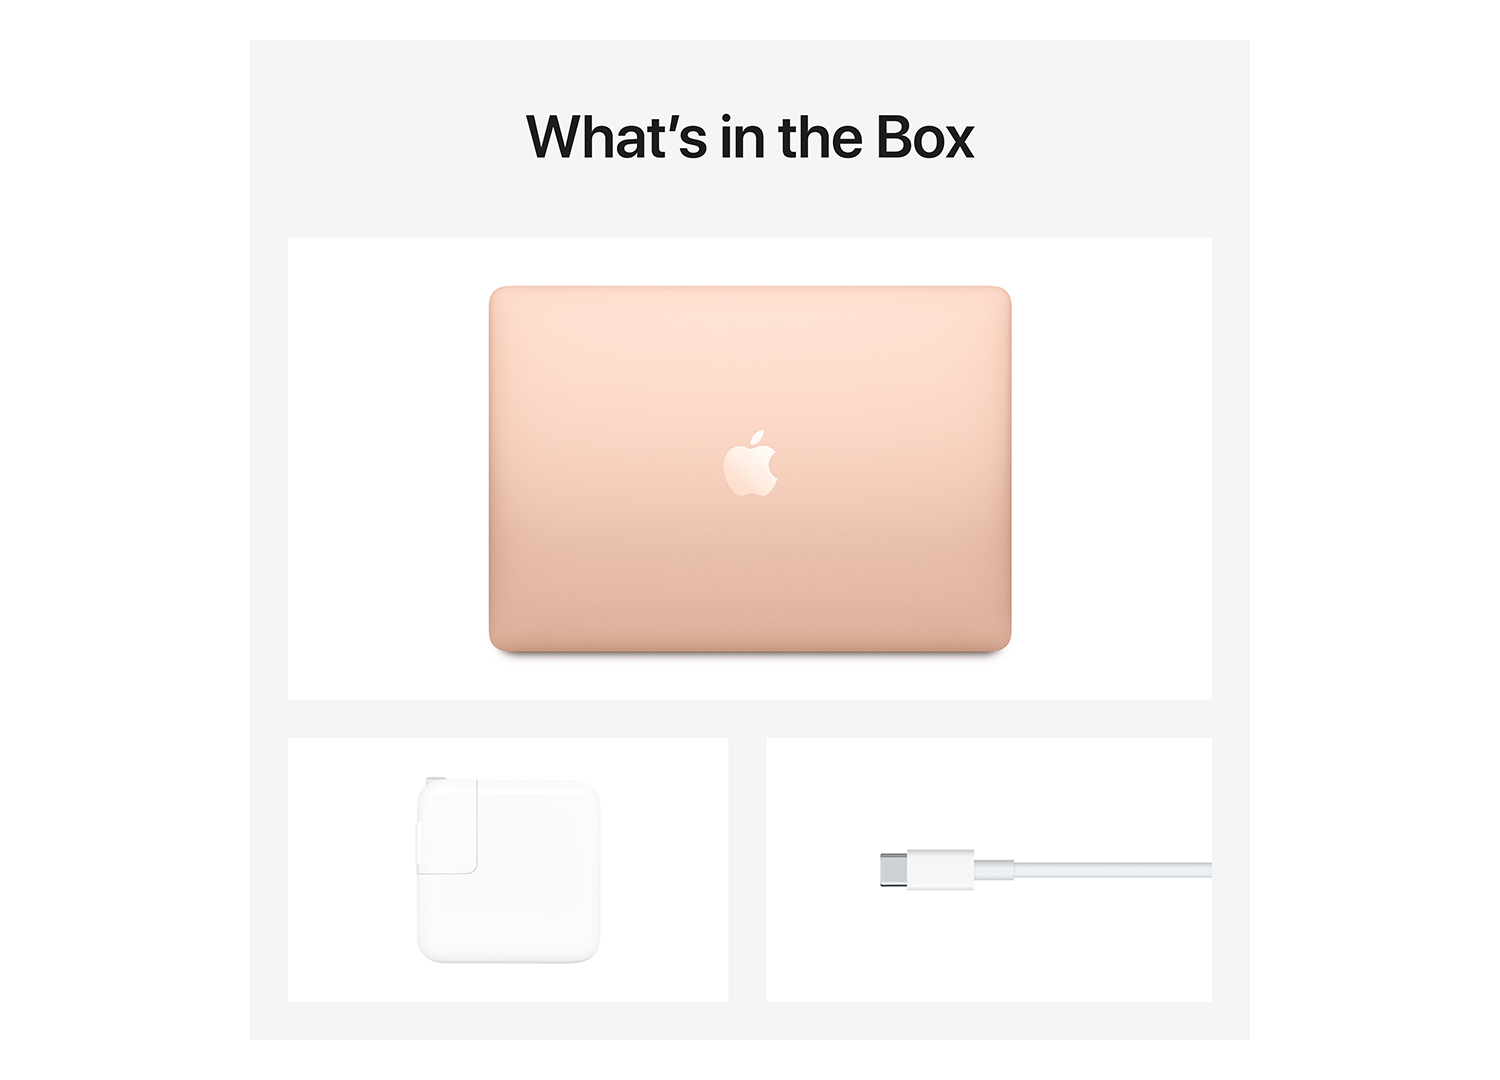 MacBook-Air-What's-in-the-box.png